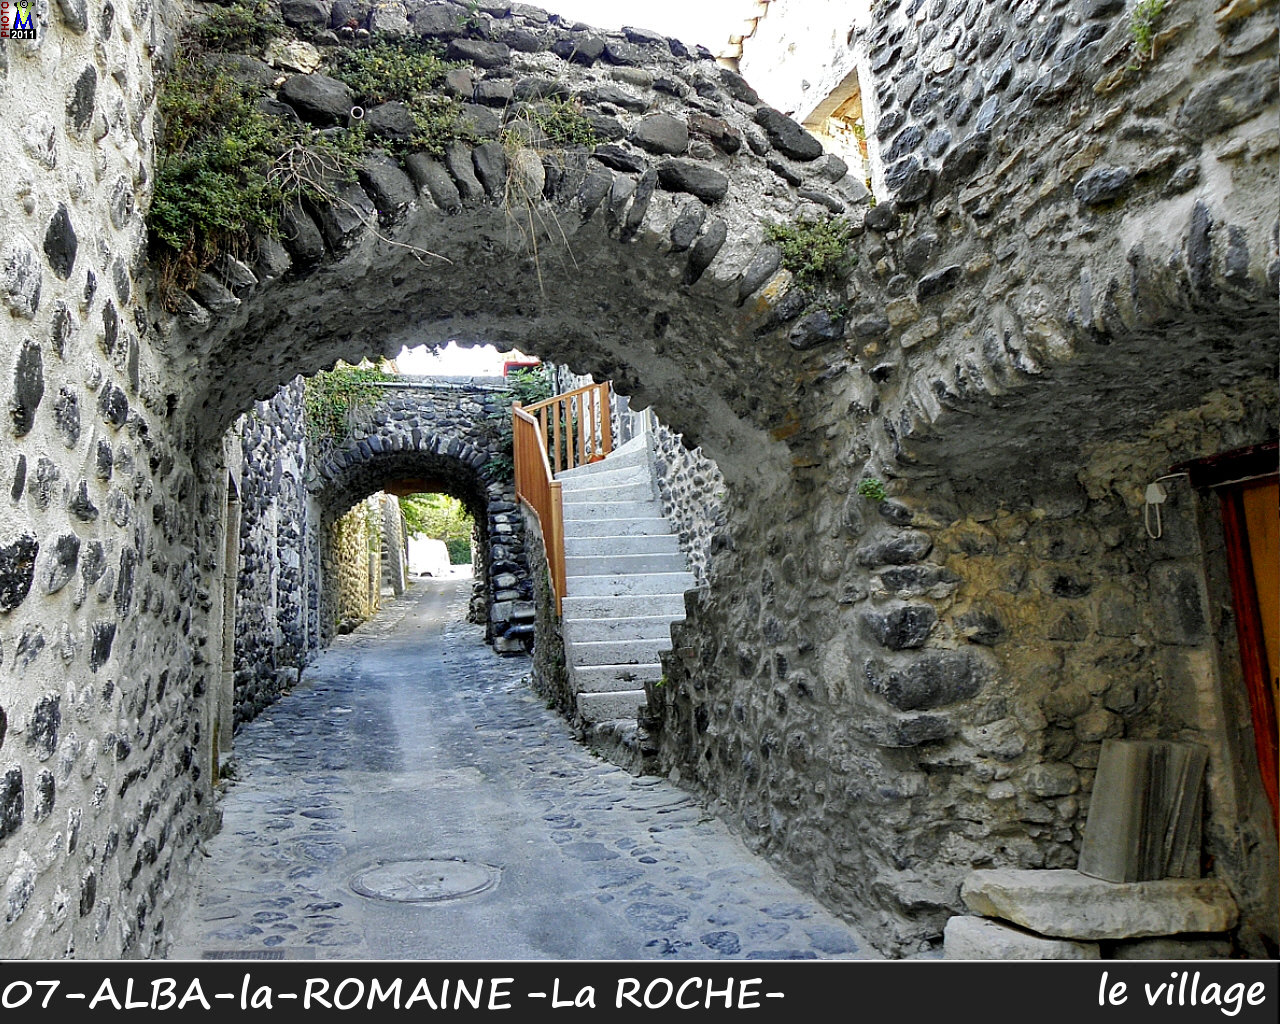 07ALBA-ROMAINEzROCHE_village_144.jpg